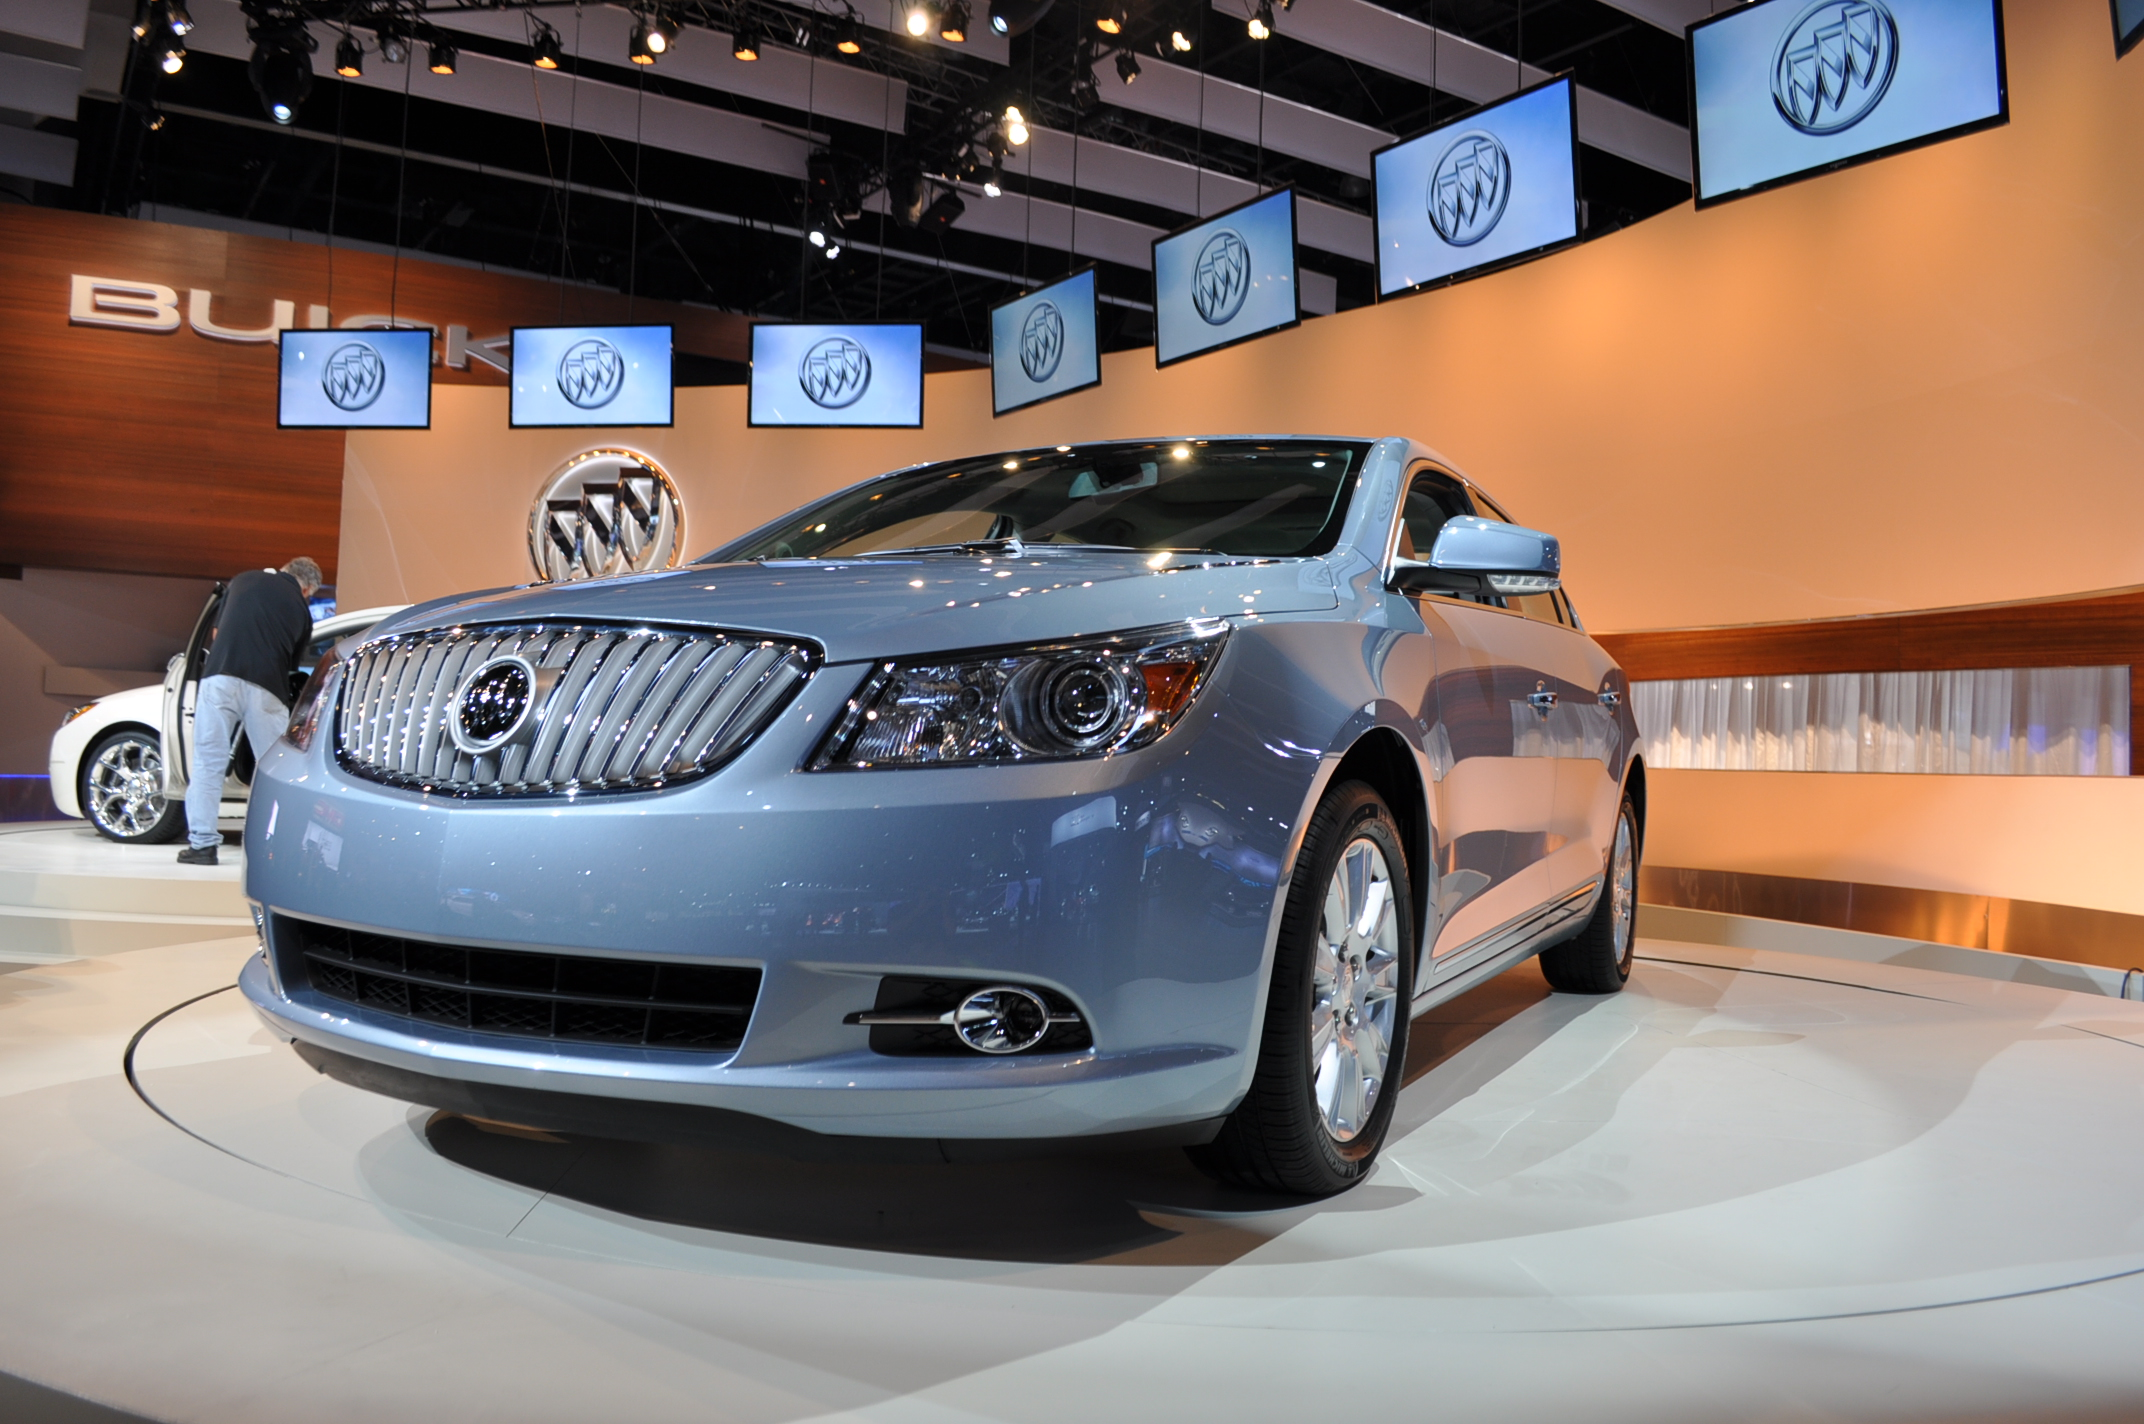 Buick LaCrosse: When the System Does Not Seem to Work Properly